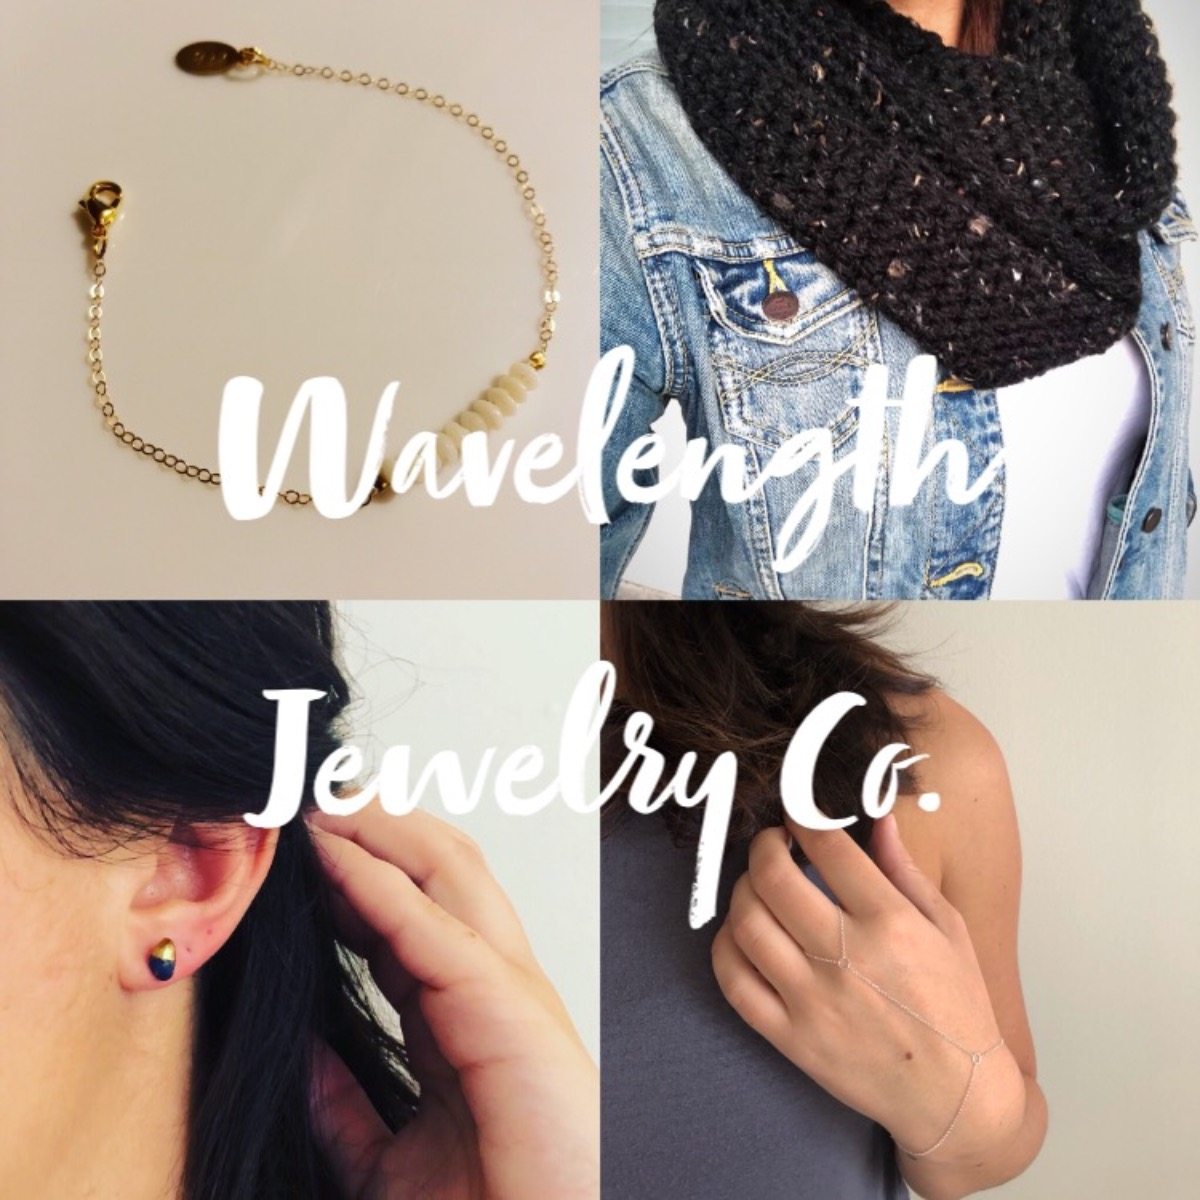 Wavelength Jewelry Co Profile Picture